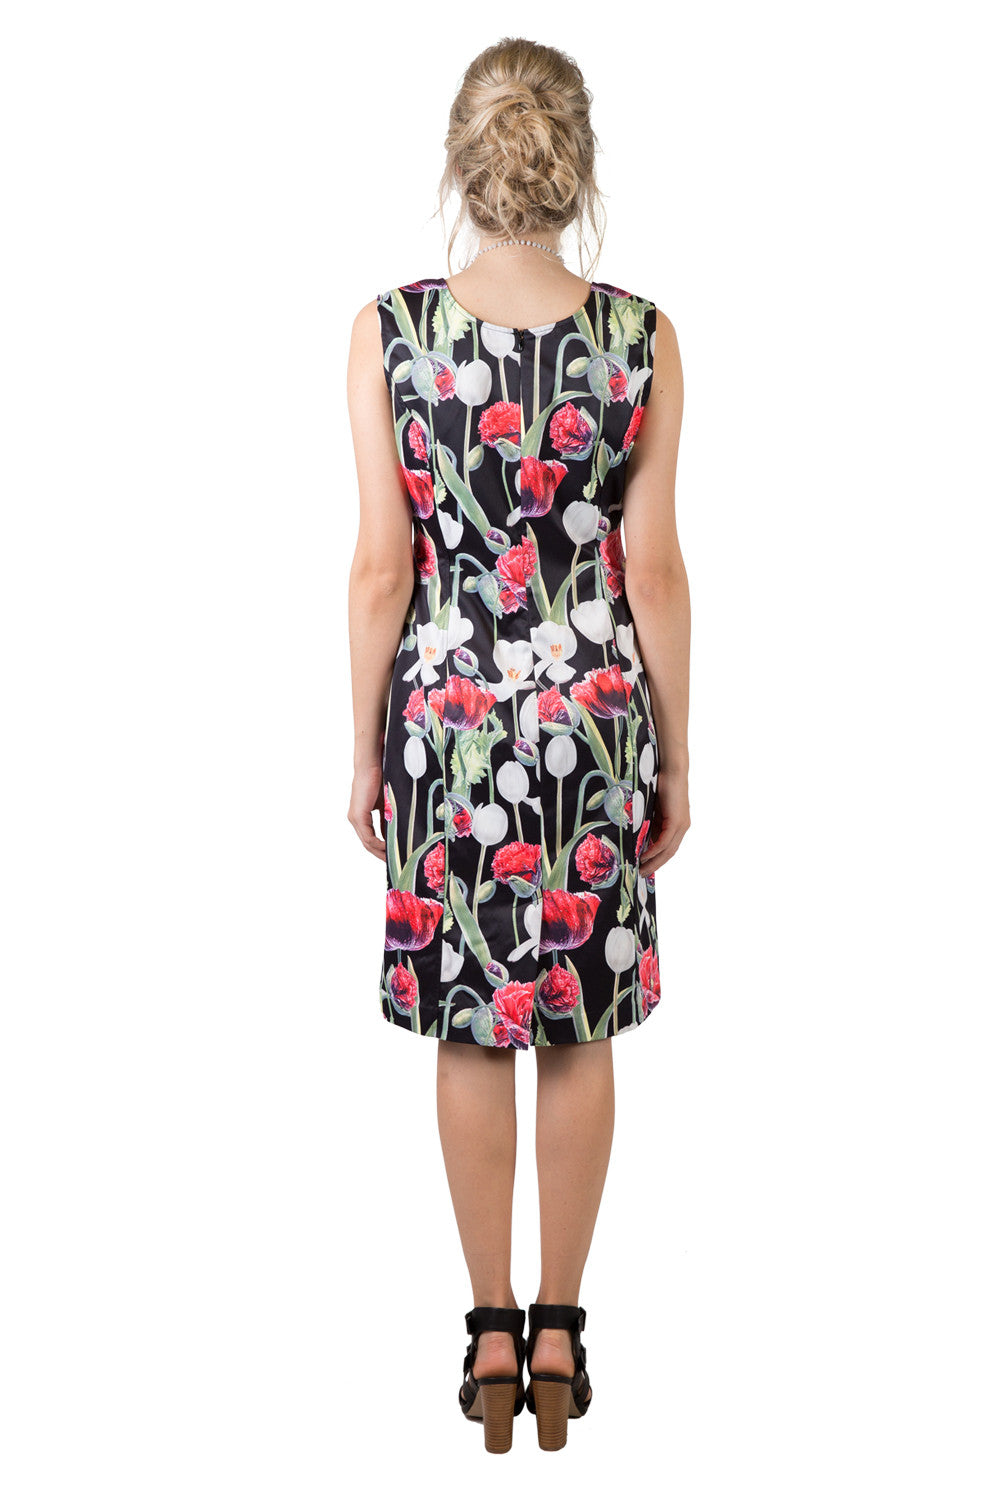 Bethany Rae Dress | Affordable Designer Dress | On Trend | Annah S